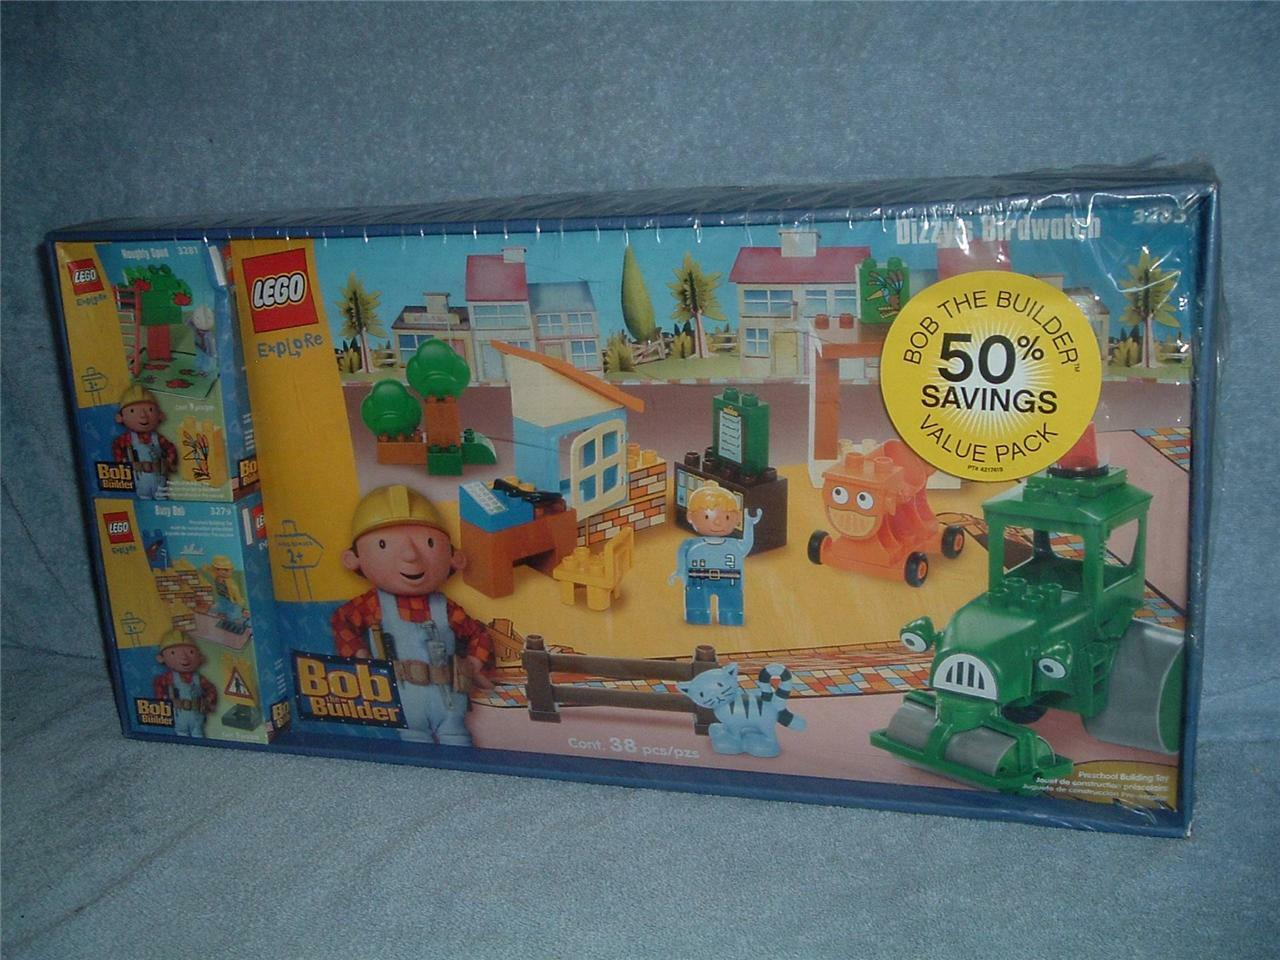 LEGO Explore 3283 3281 3279 Naughty Spud Busy Bob the the the Builder Dizzy's Birdwatch b4e58a